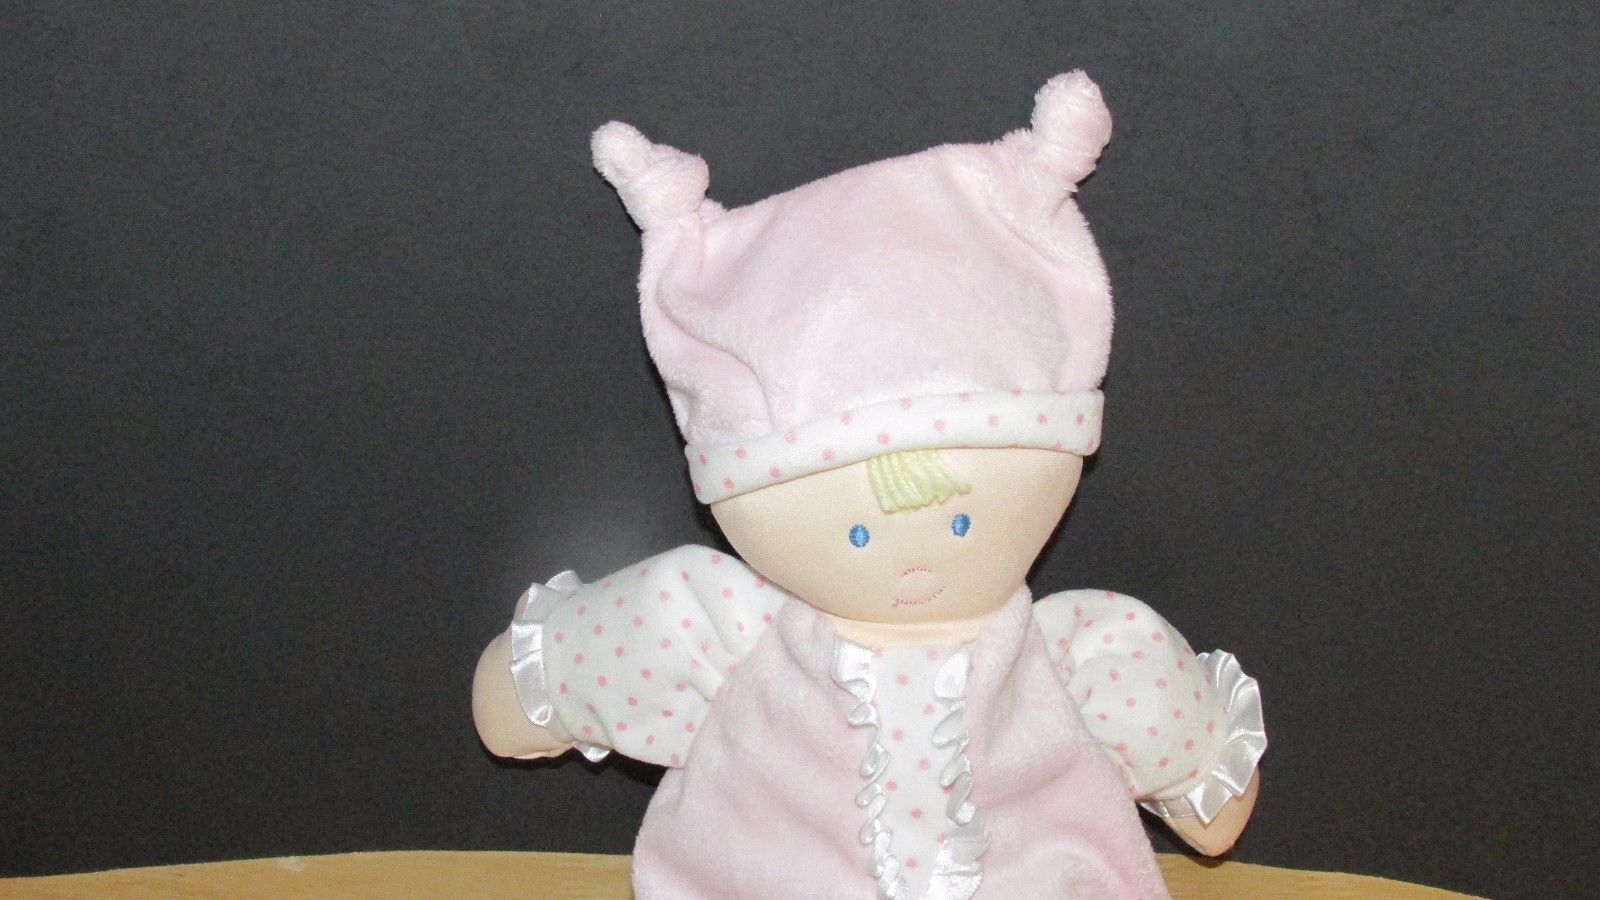 Kids Preferred doll baby soft plush pink knotted hat polka dots satin ruffle image 2